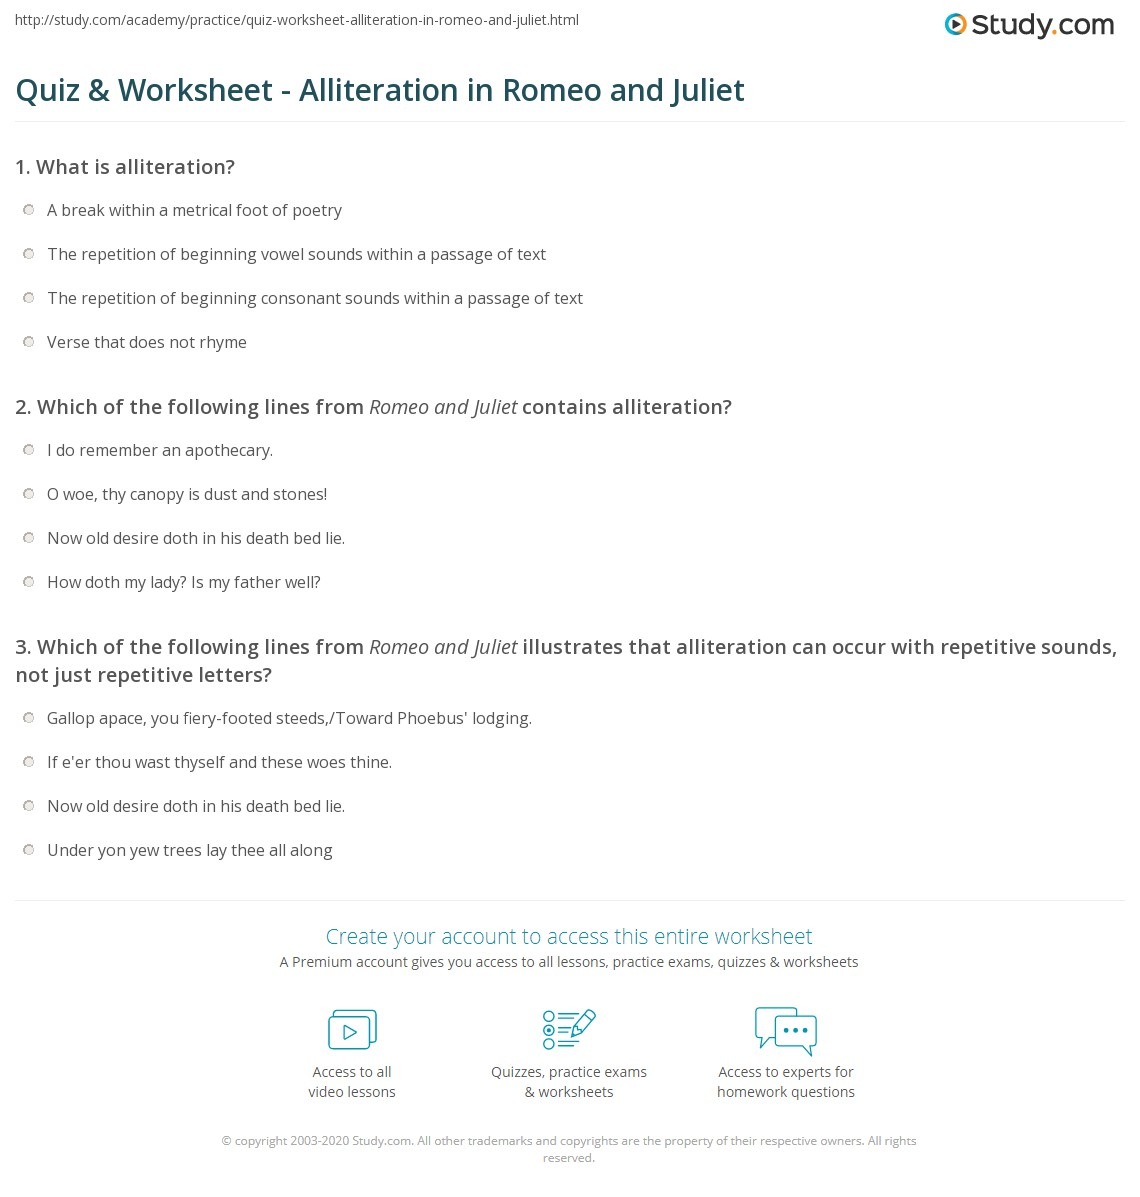 Quiz Worksheet Alliteration In Romeo And Juliet Study